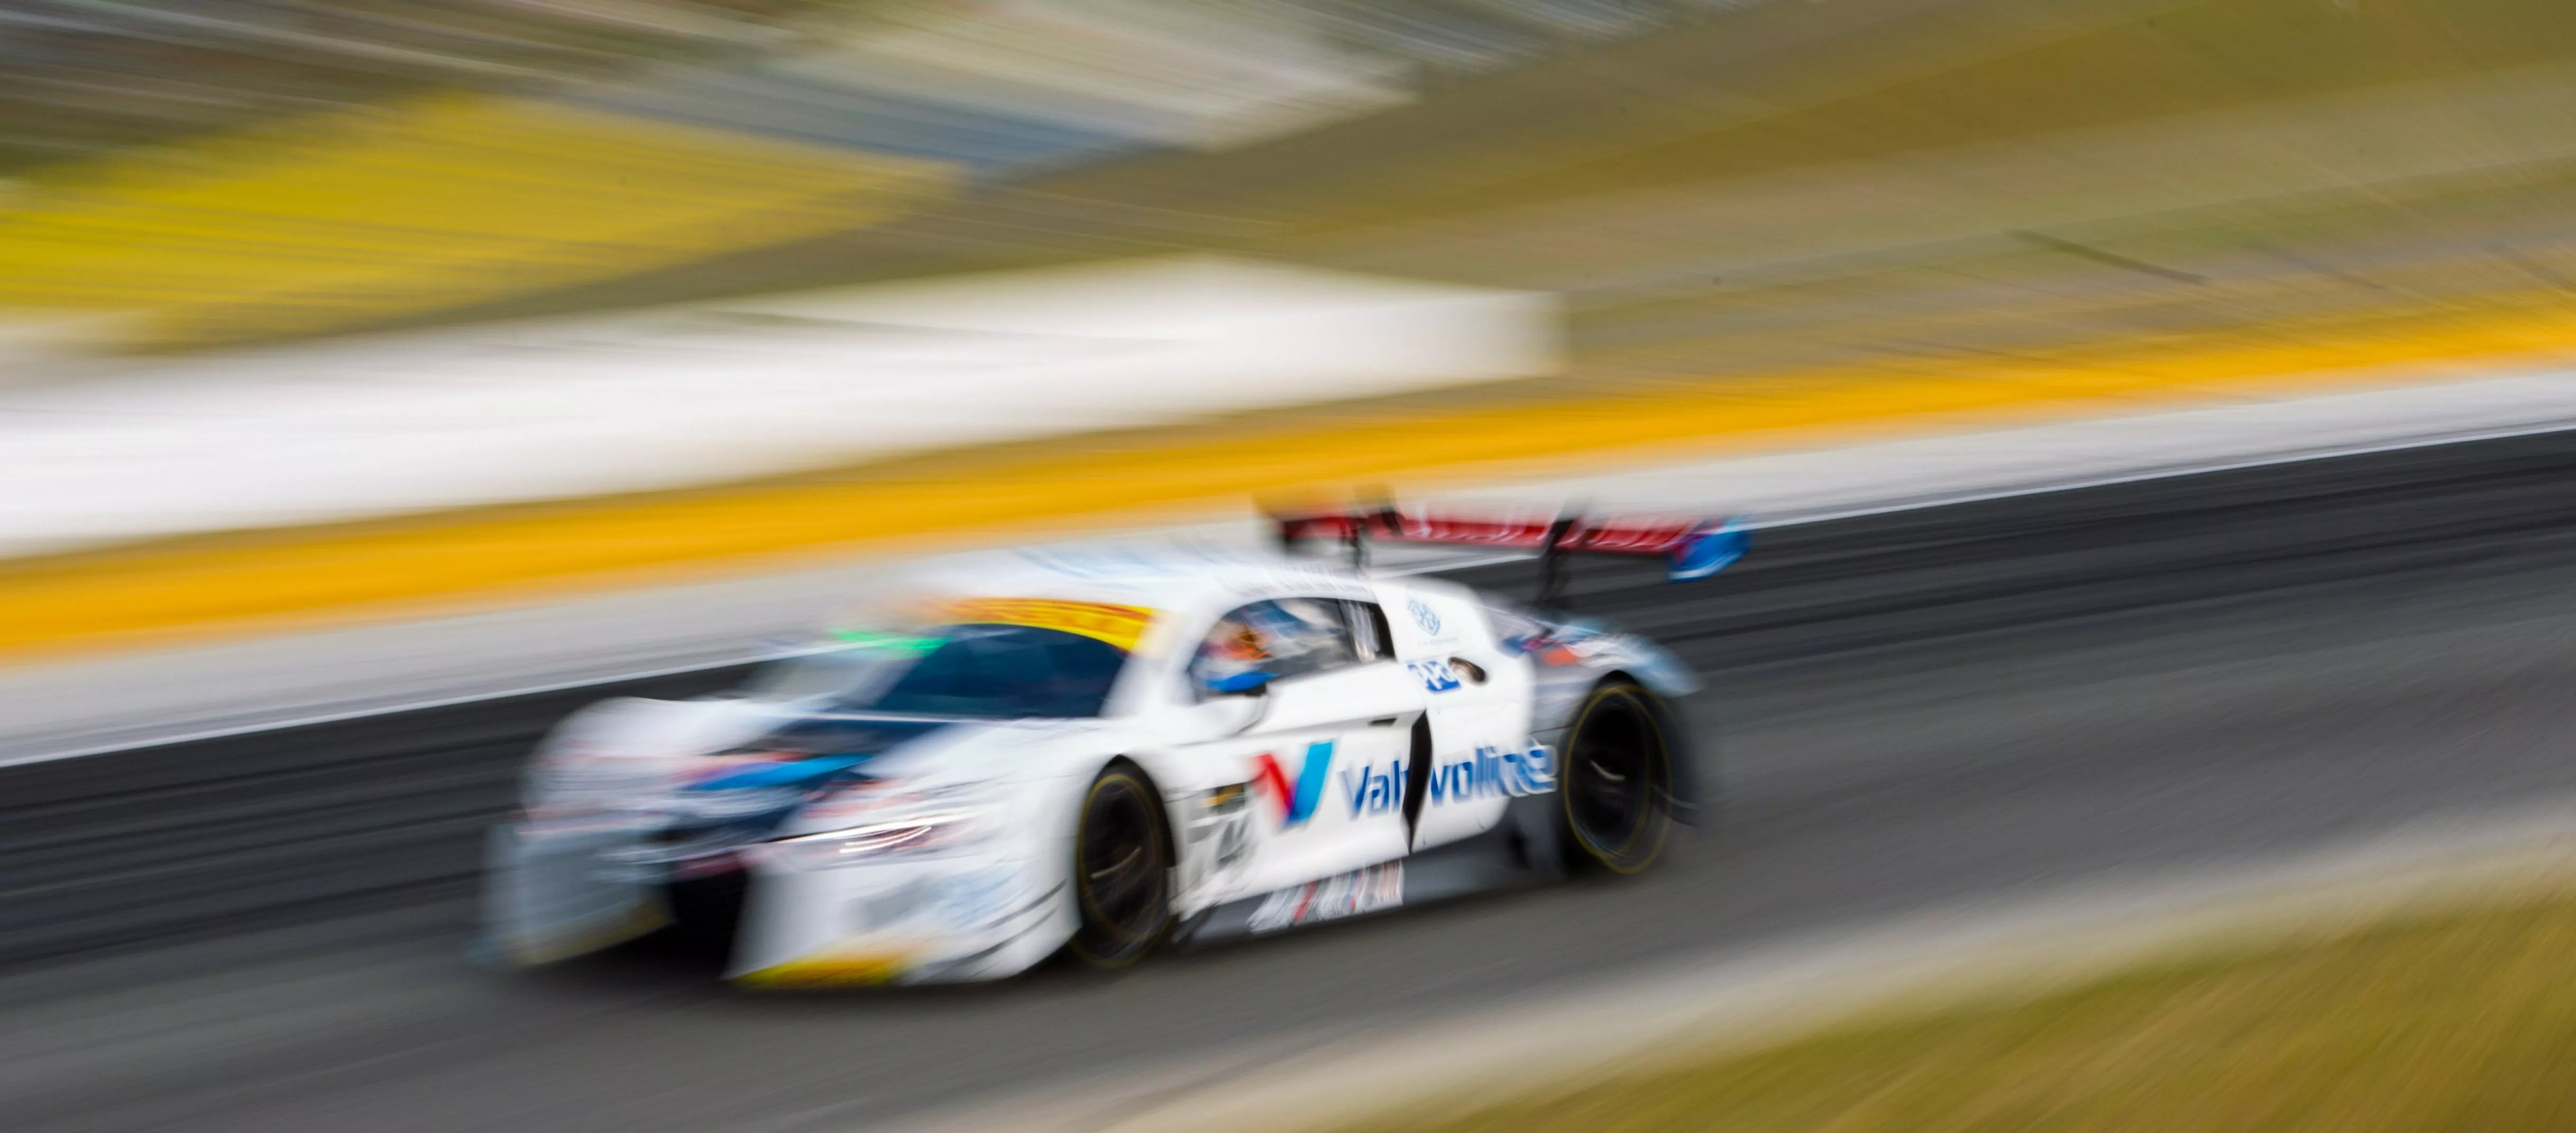 Strong Weekend moves Van der Linde & Emery to 2nd in Australian GT Championship